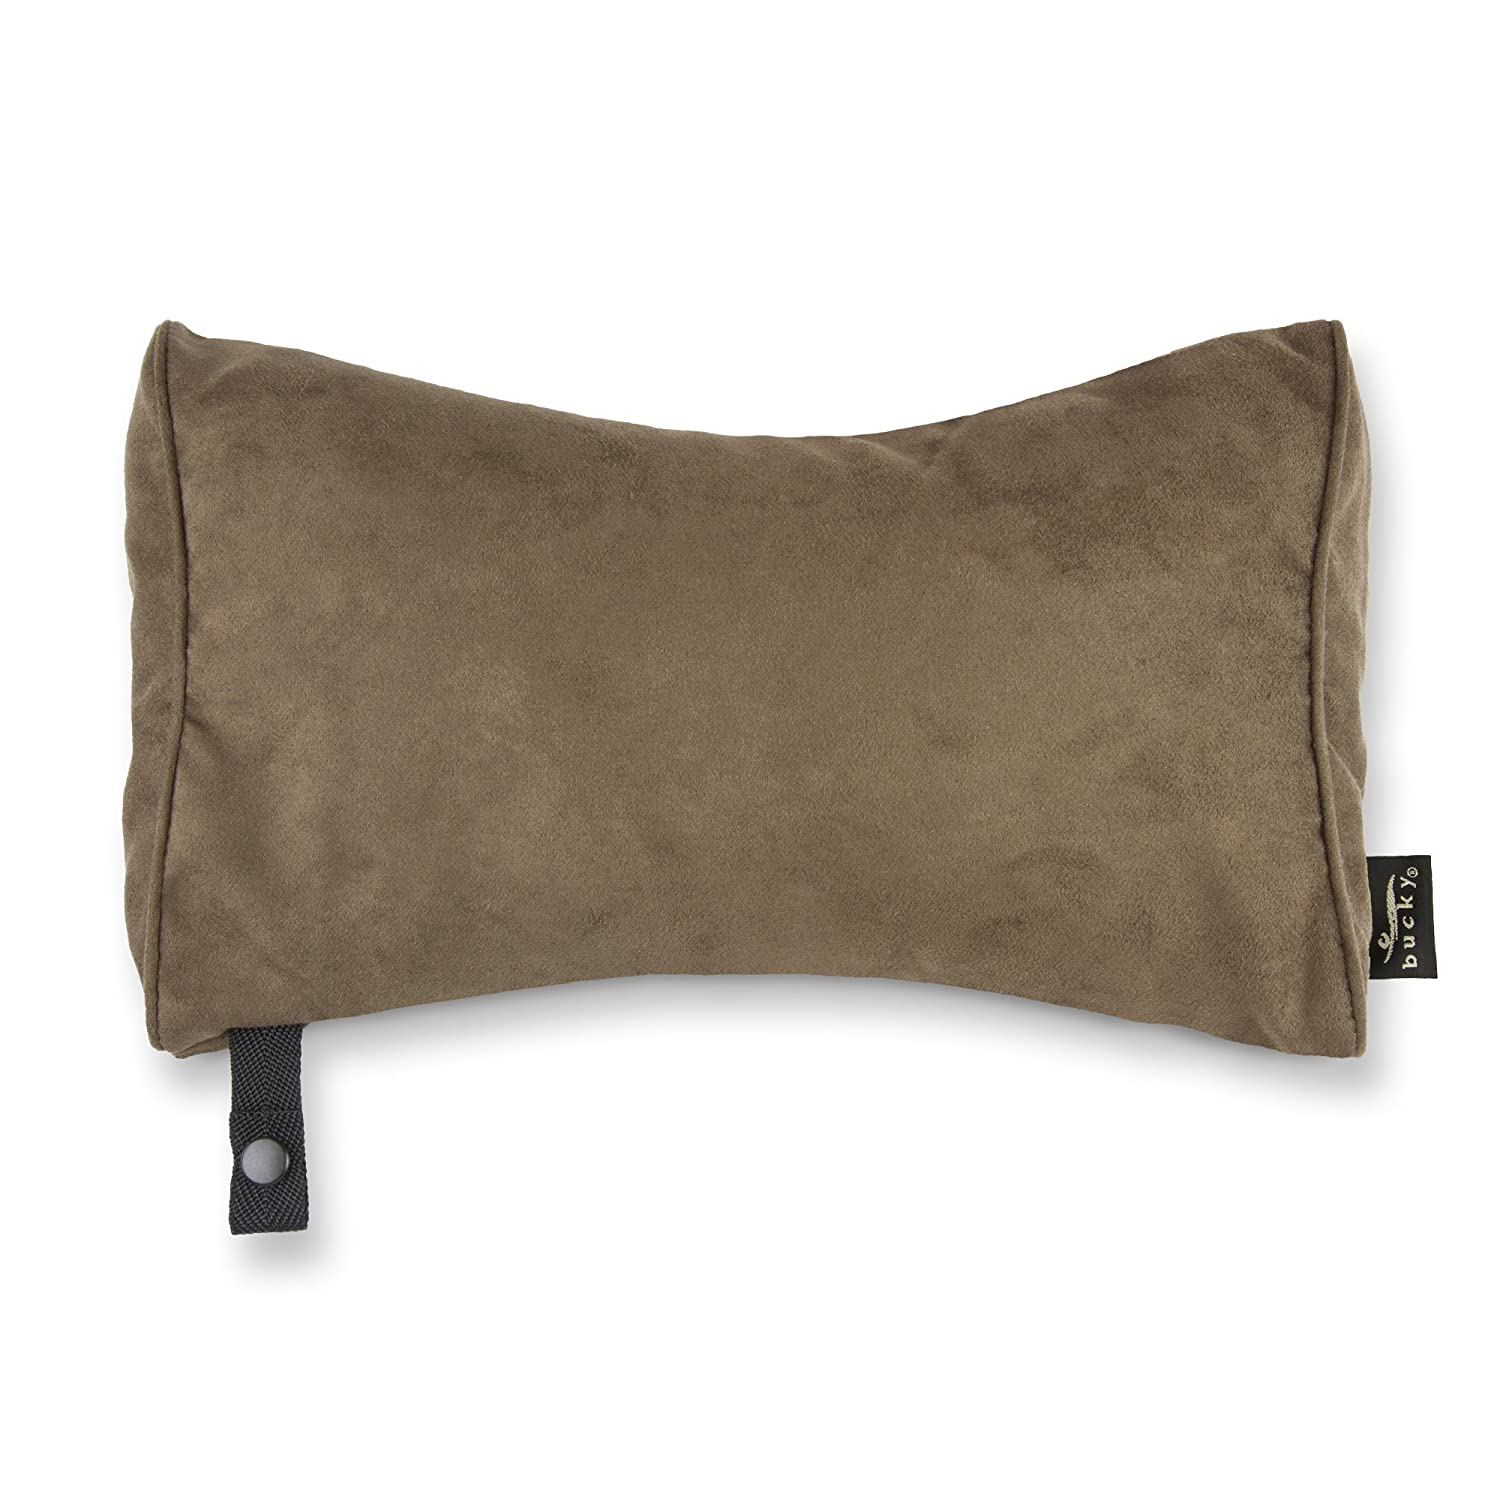 Bucky Luggage Beau Microsuede Neck and Back Pillow luggage